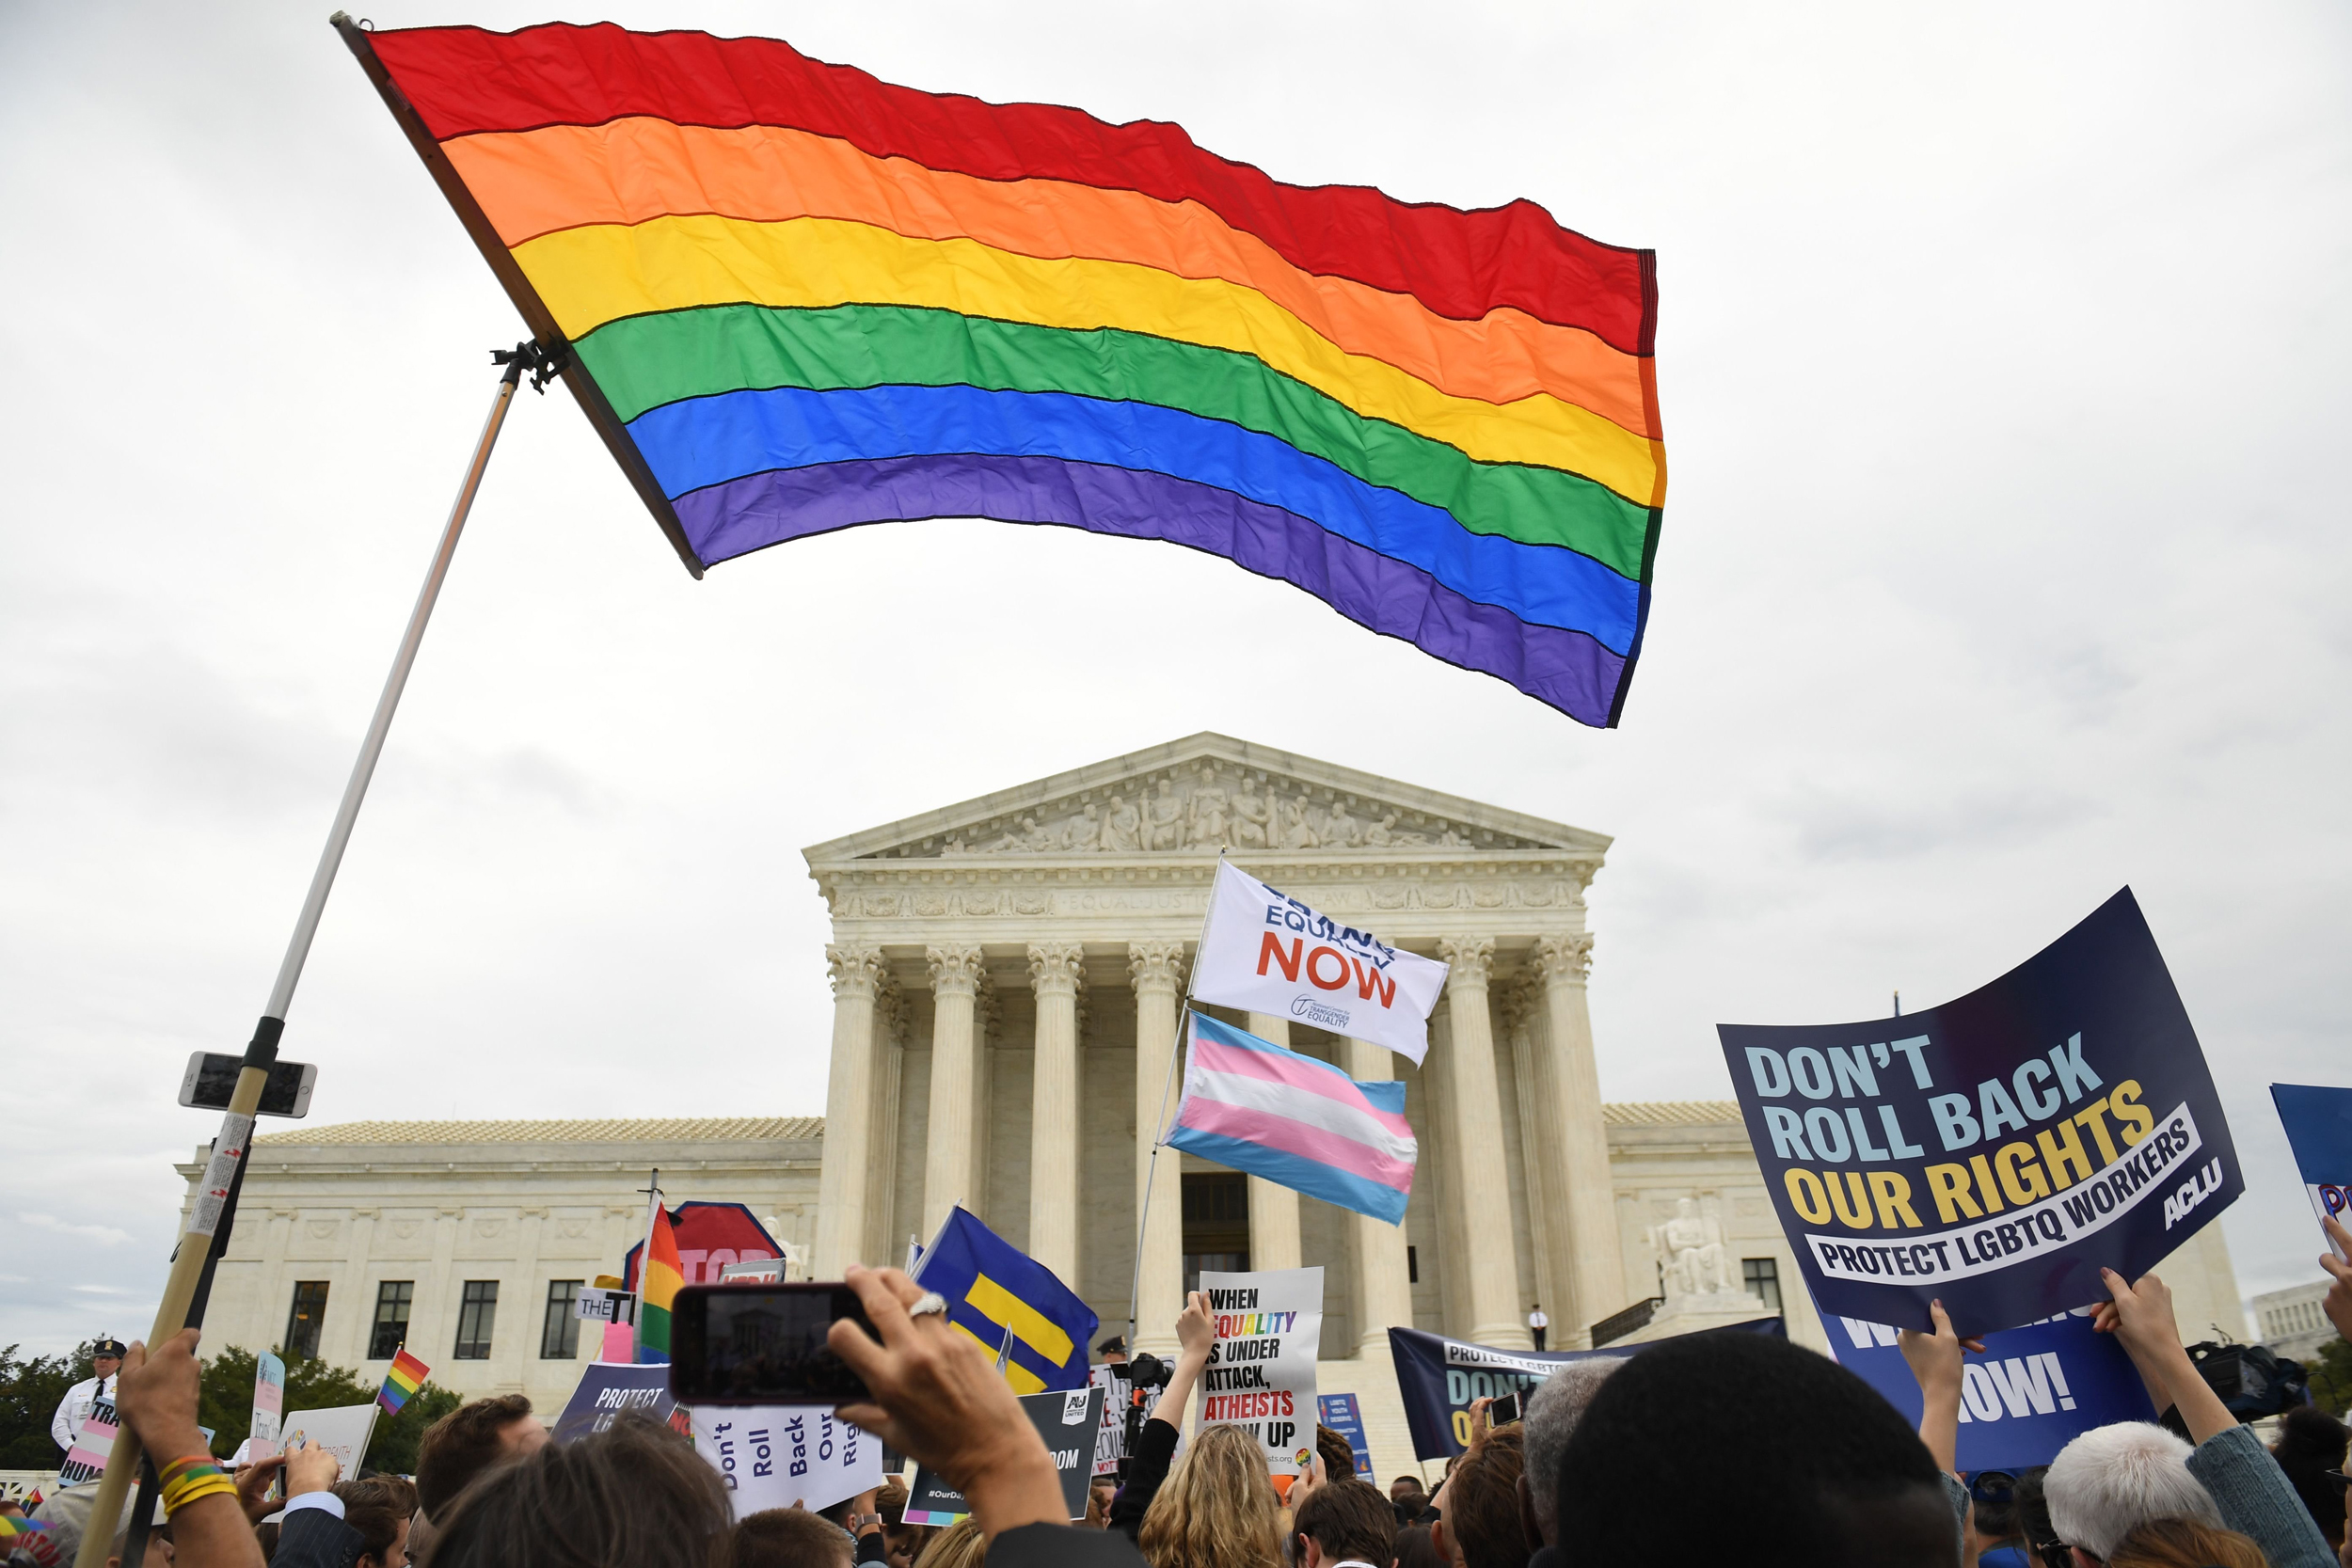 People holding LGBTQ signs outside the US Supreme Court